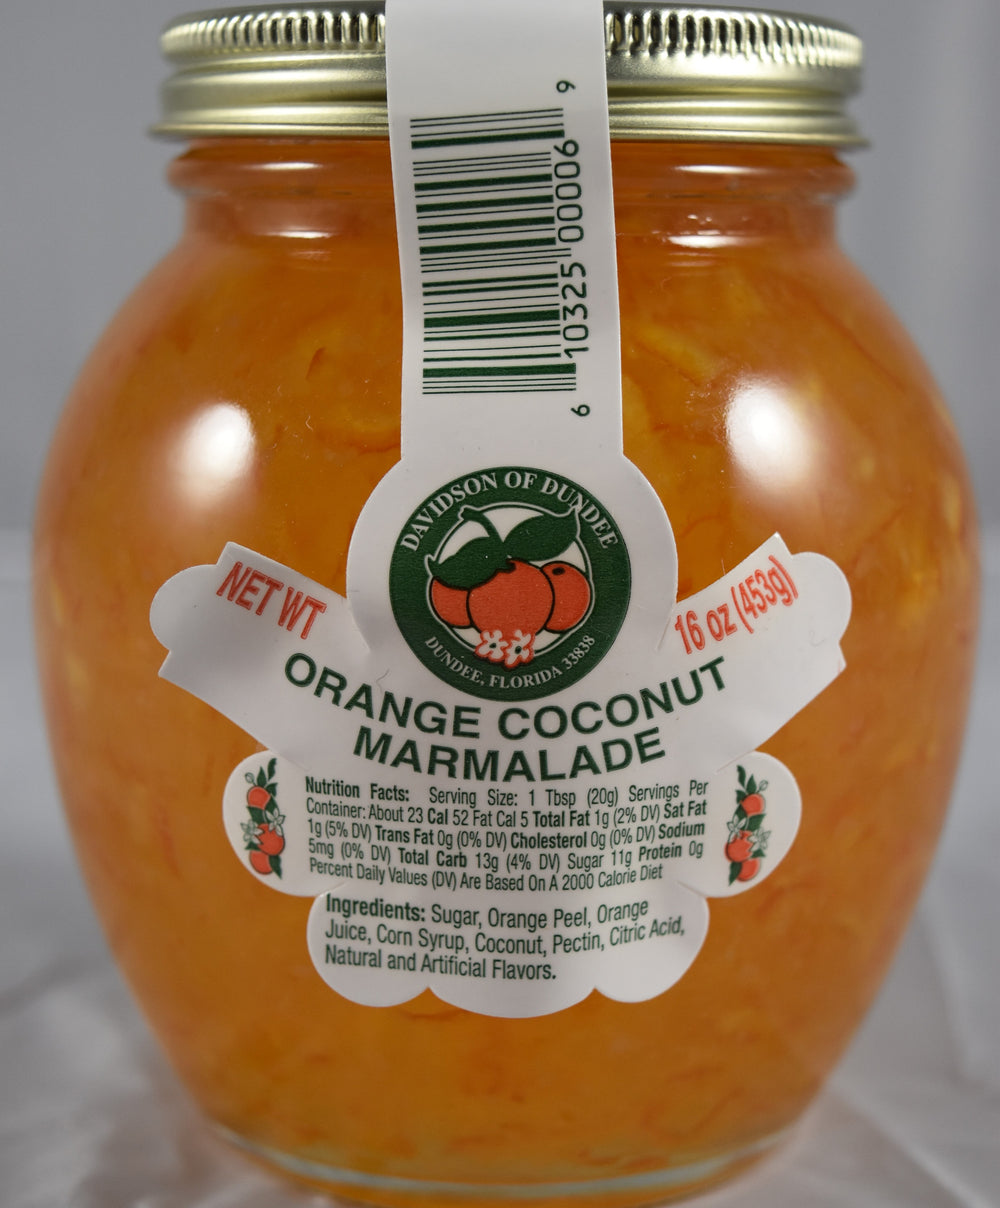 Orange Coconut Marmalade 16 oz. - Florida Orange World